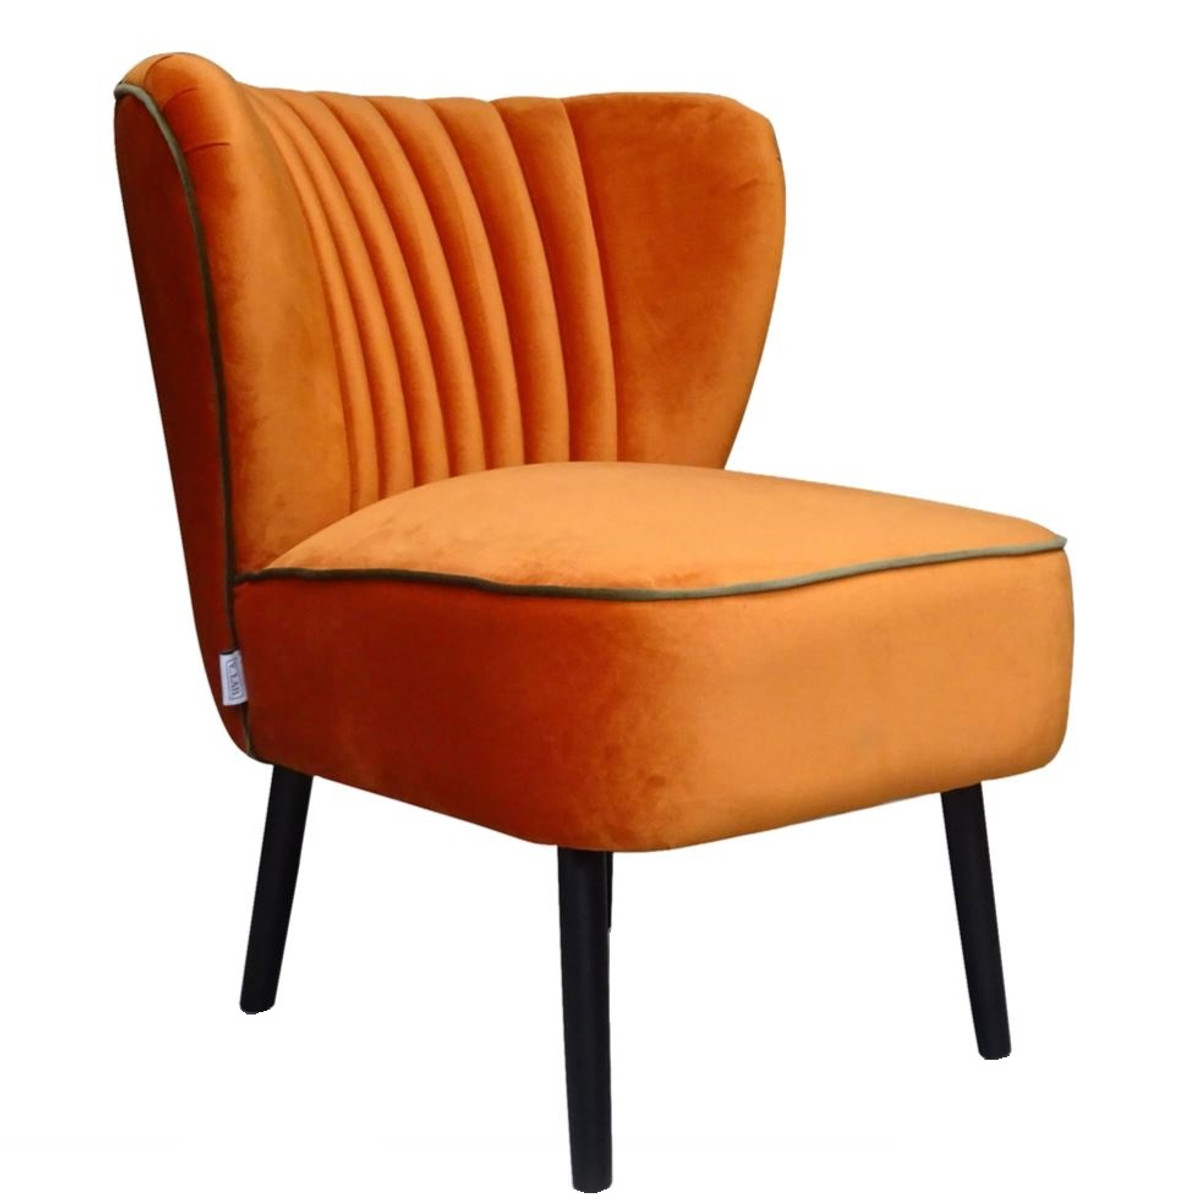 Casa padrino luxus wohnzimmer sessel orange 61 x 70 x h for Sessel 70 cm